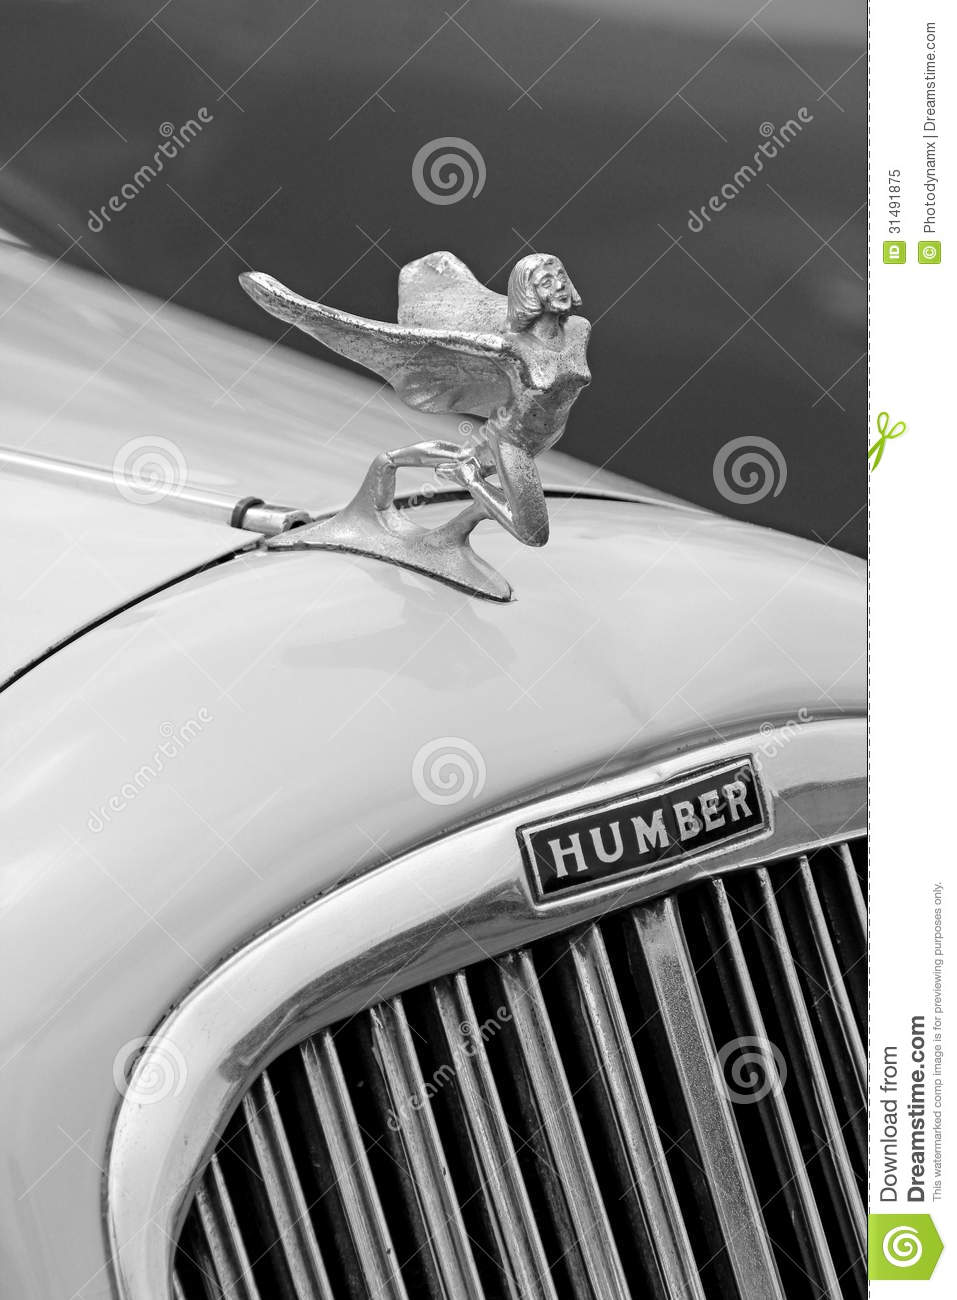 Vintage humber car flying lady mascot Editorial Image